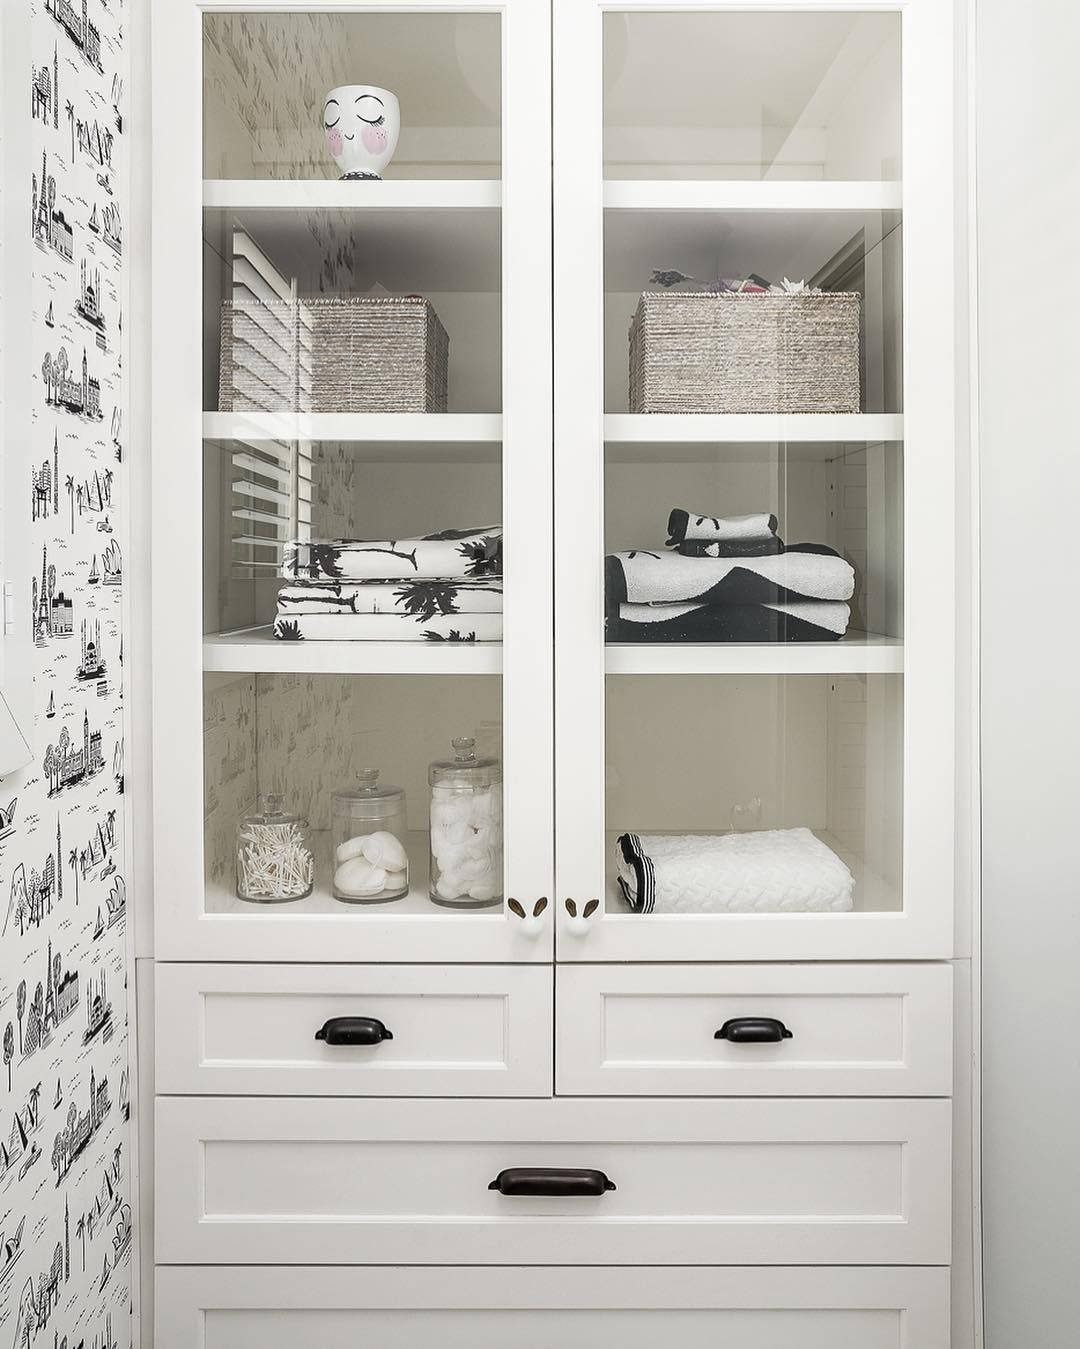 Bathroom built in linen cabinet | Organize! | Pinterest | Linen ...